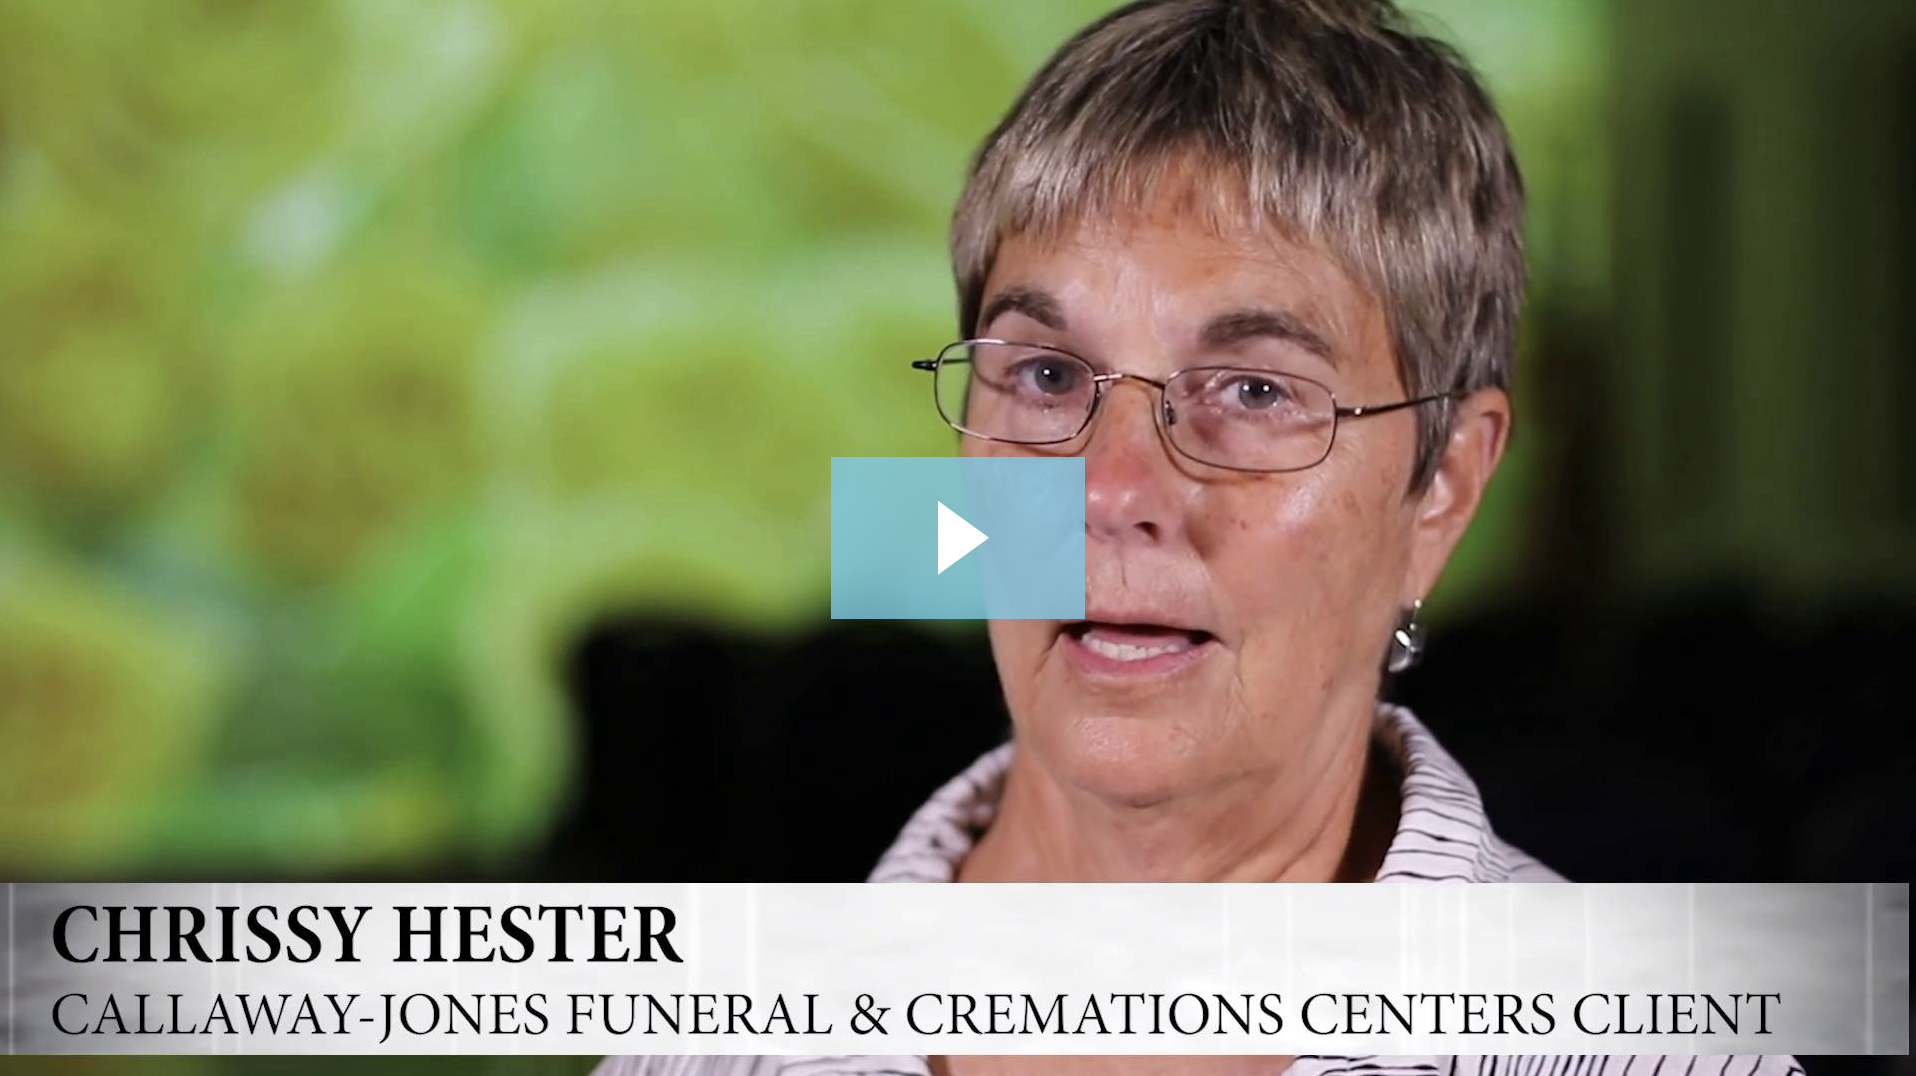 Chrissy Hester Funeral Home Review